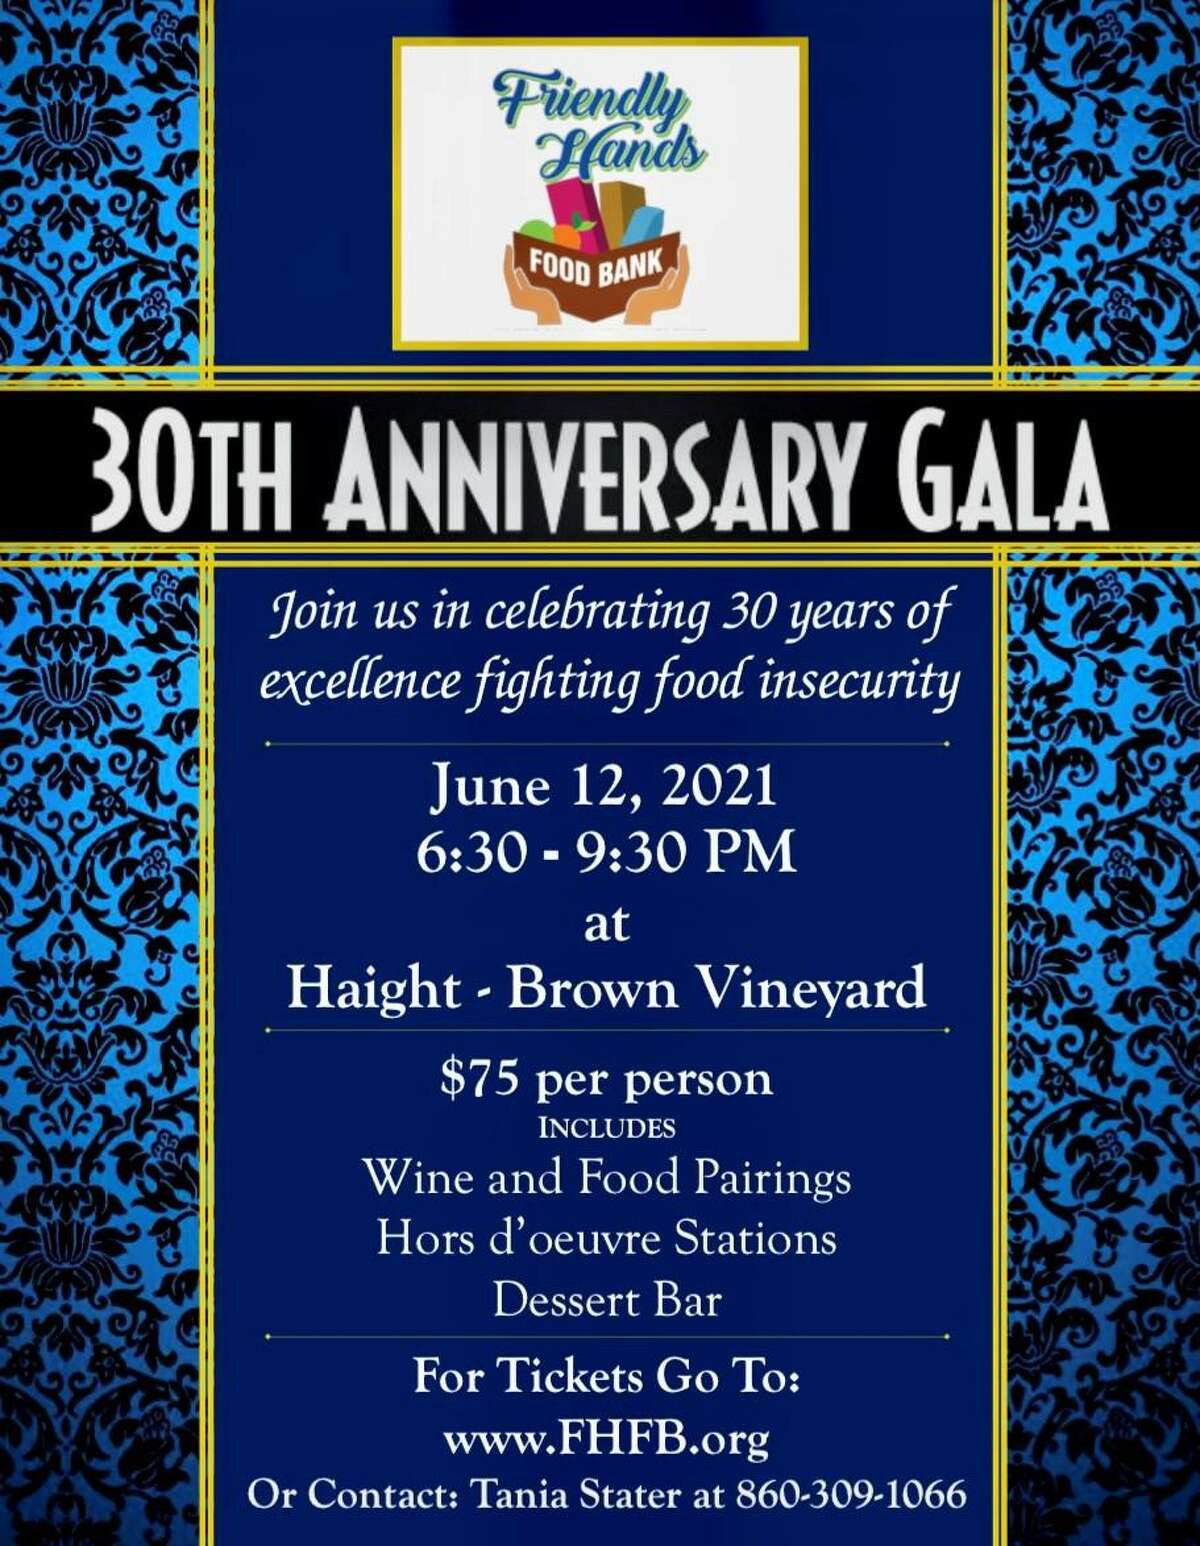 Friendly Hands Food Bank is celebrating its 30th anniversary with a gala party at Haight Brown Vineyard in Litchfield, May 12. Tickets are now available.